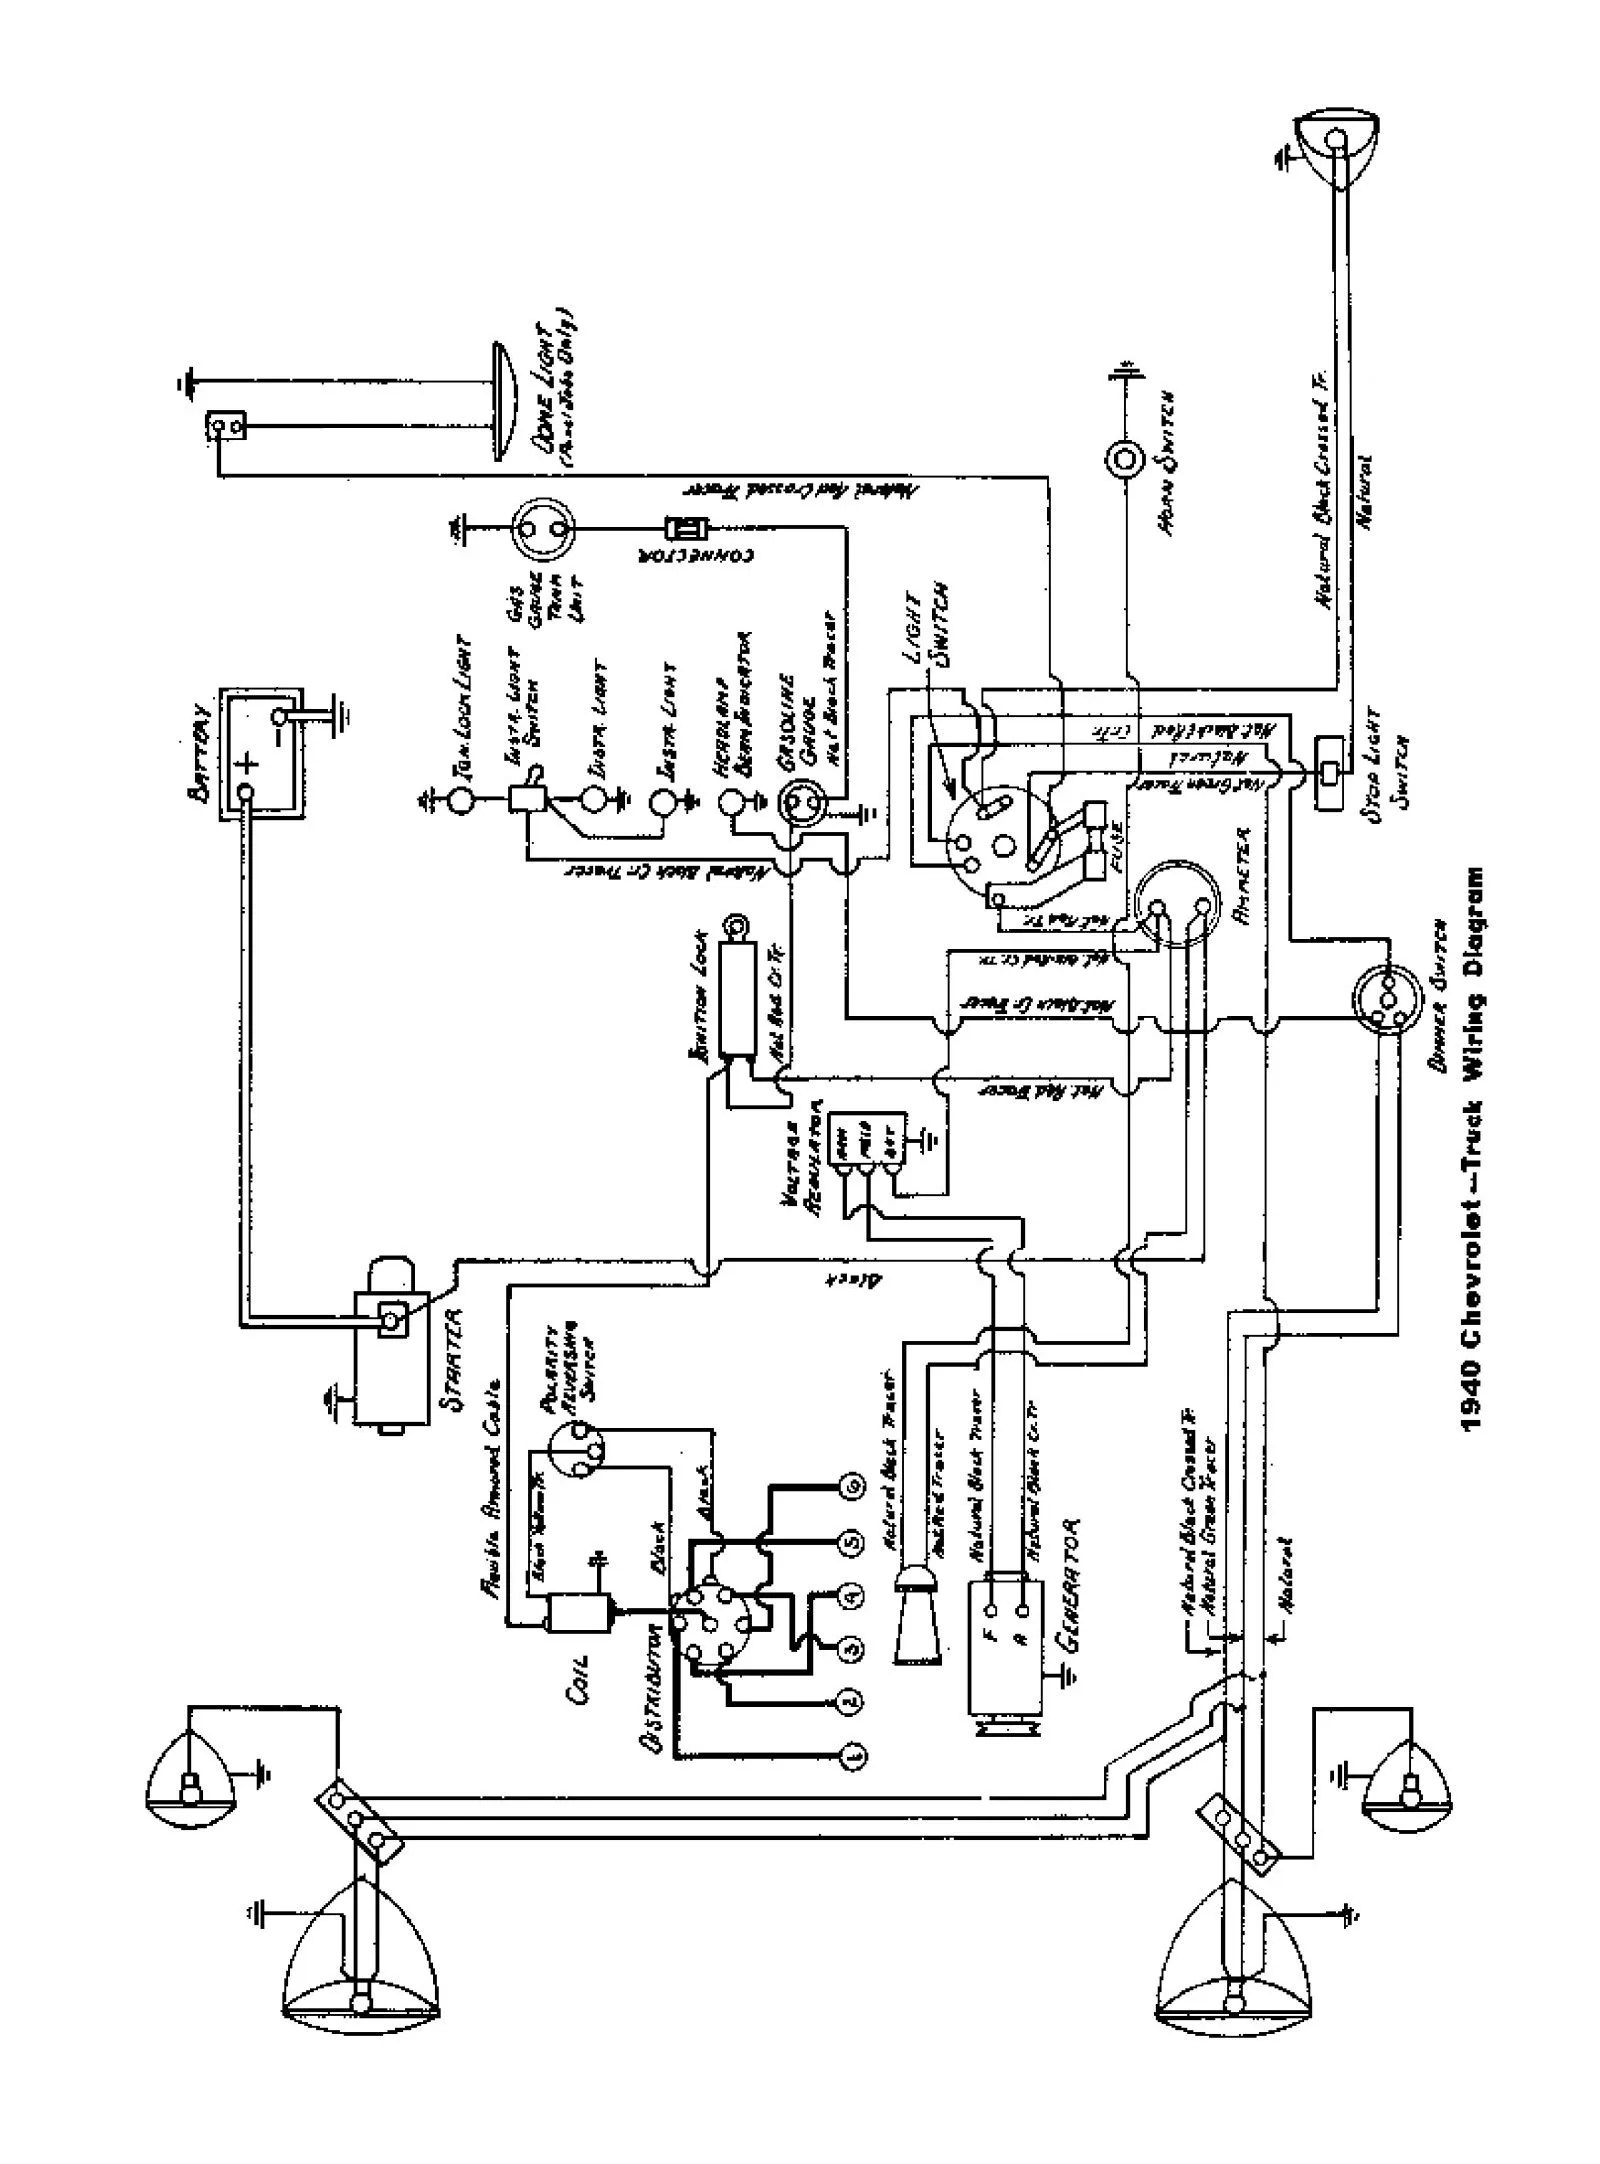 hight resolution of 1952 international truck wiring diagram schematic wiring diagram international truck wheels international truck wiring harness